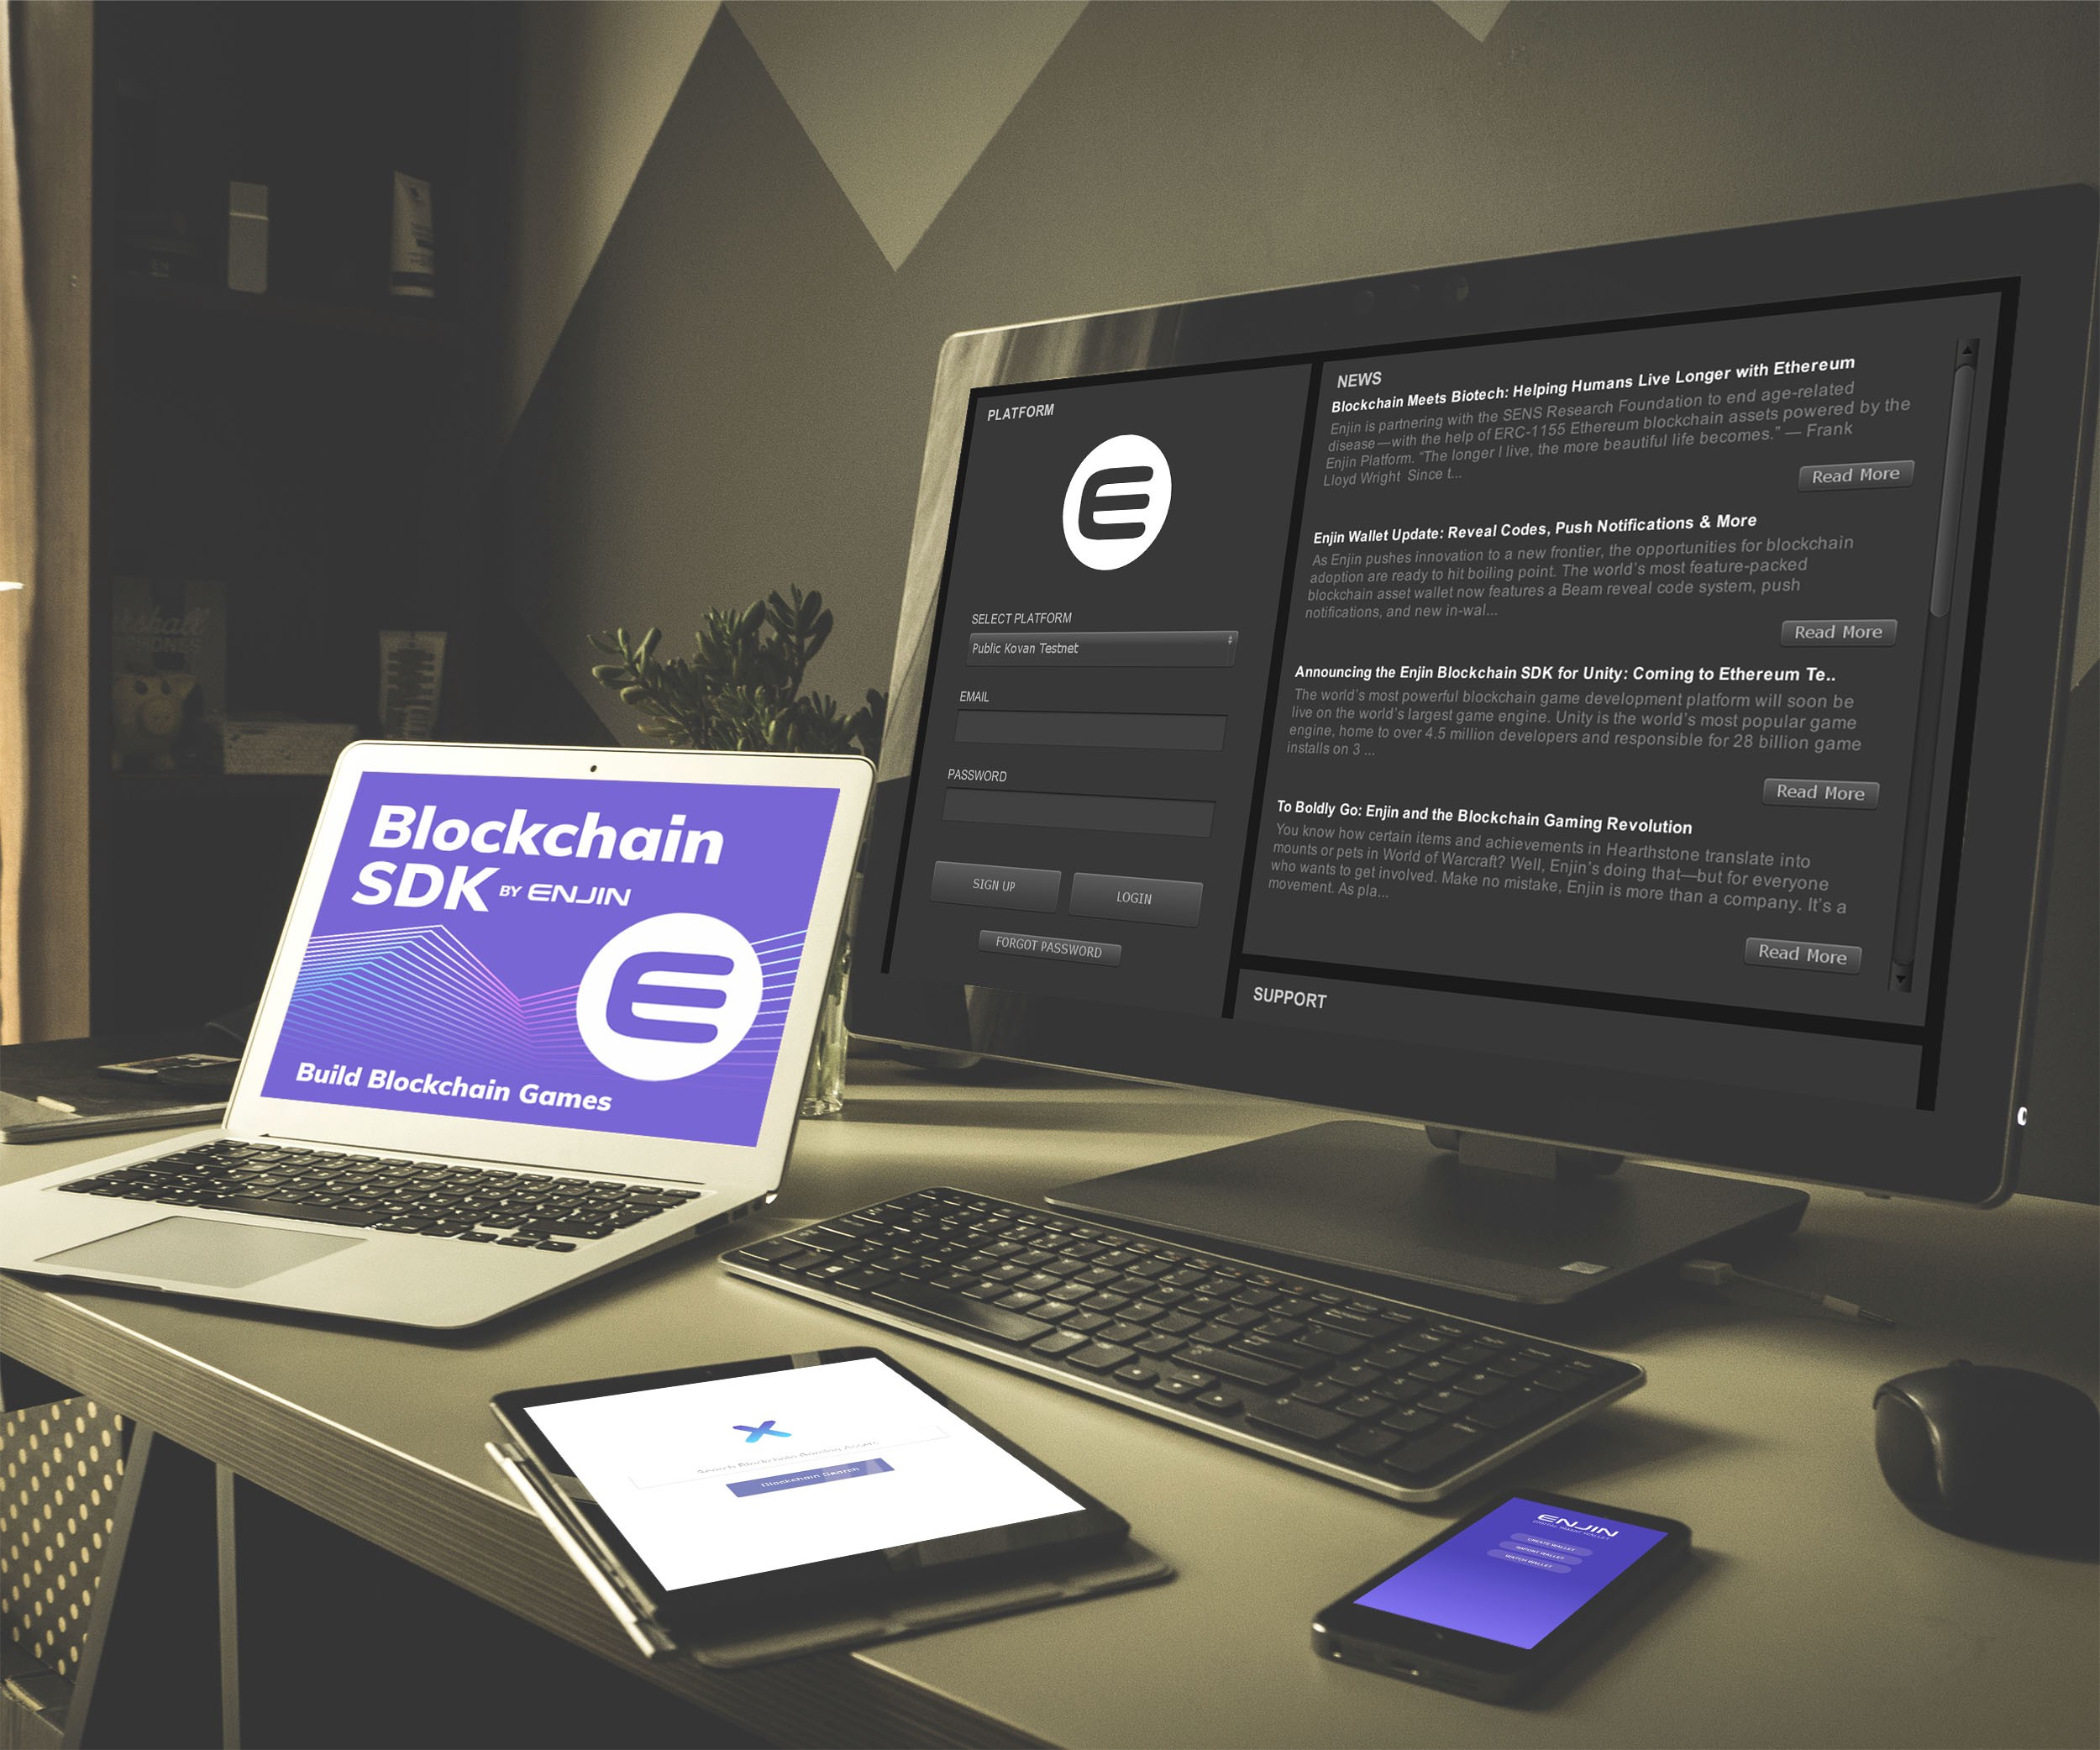 The Blockchain SDK by Enjin is Live on the Unity Asset Store